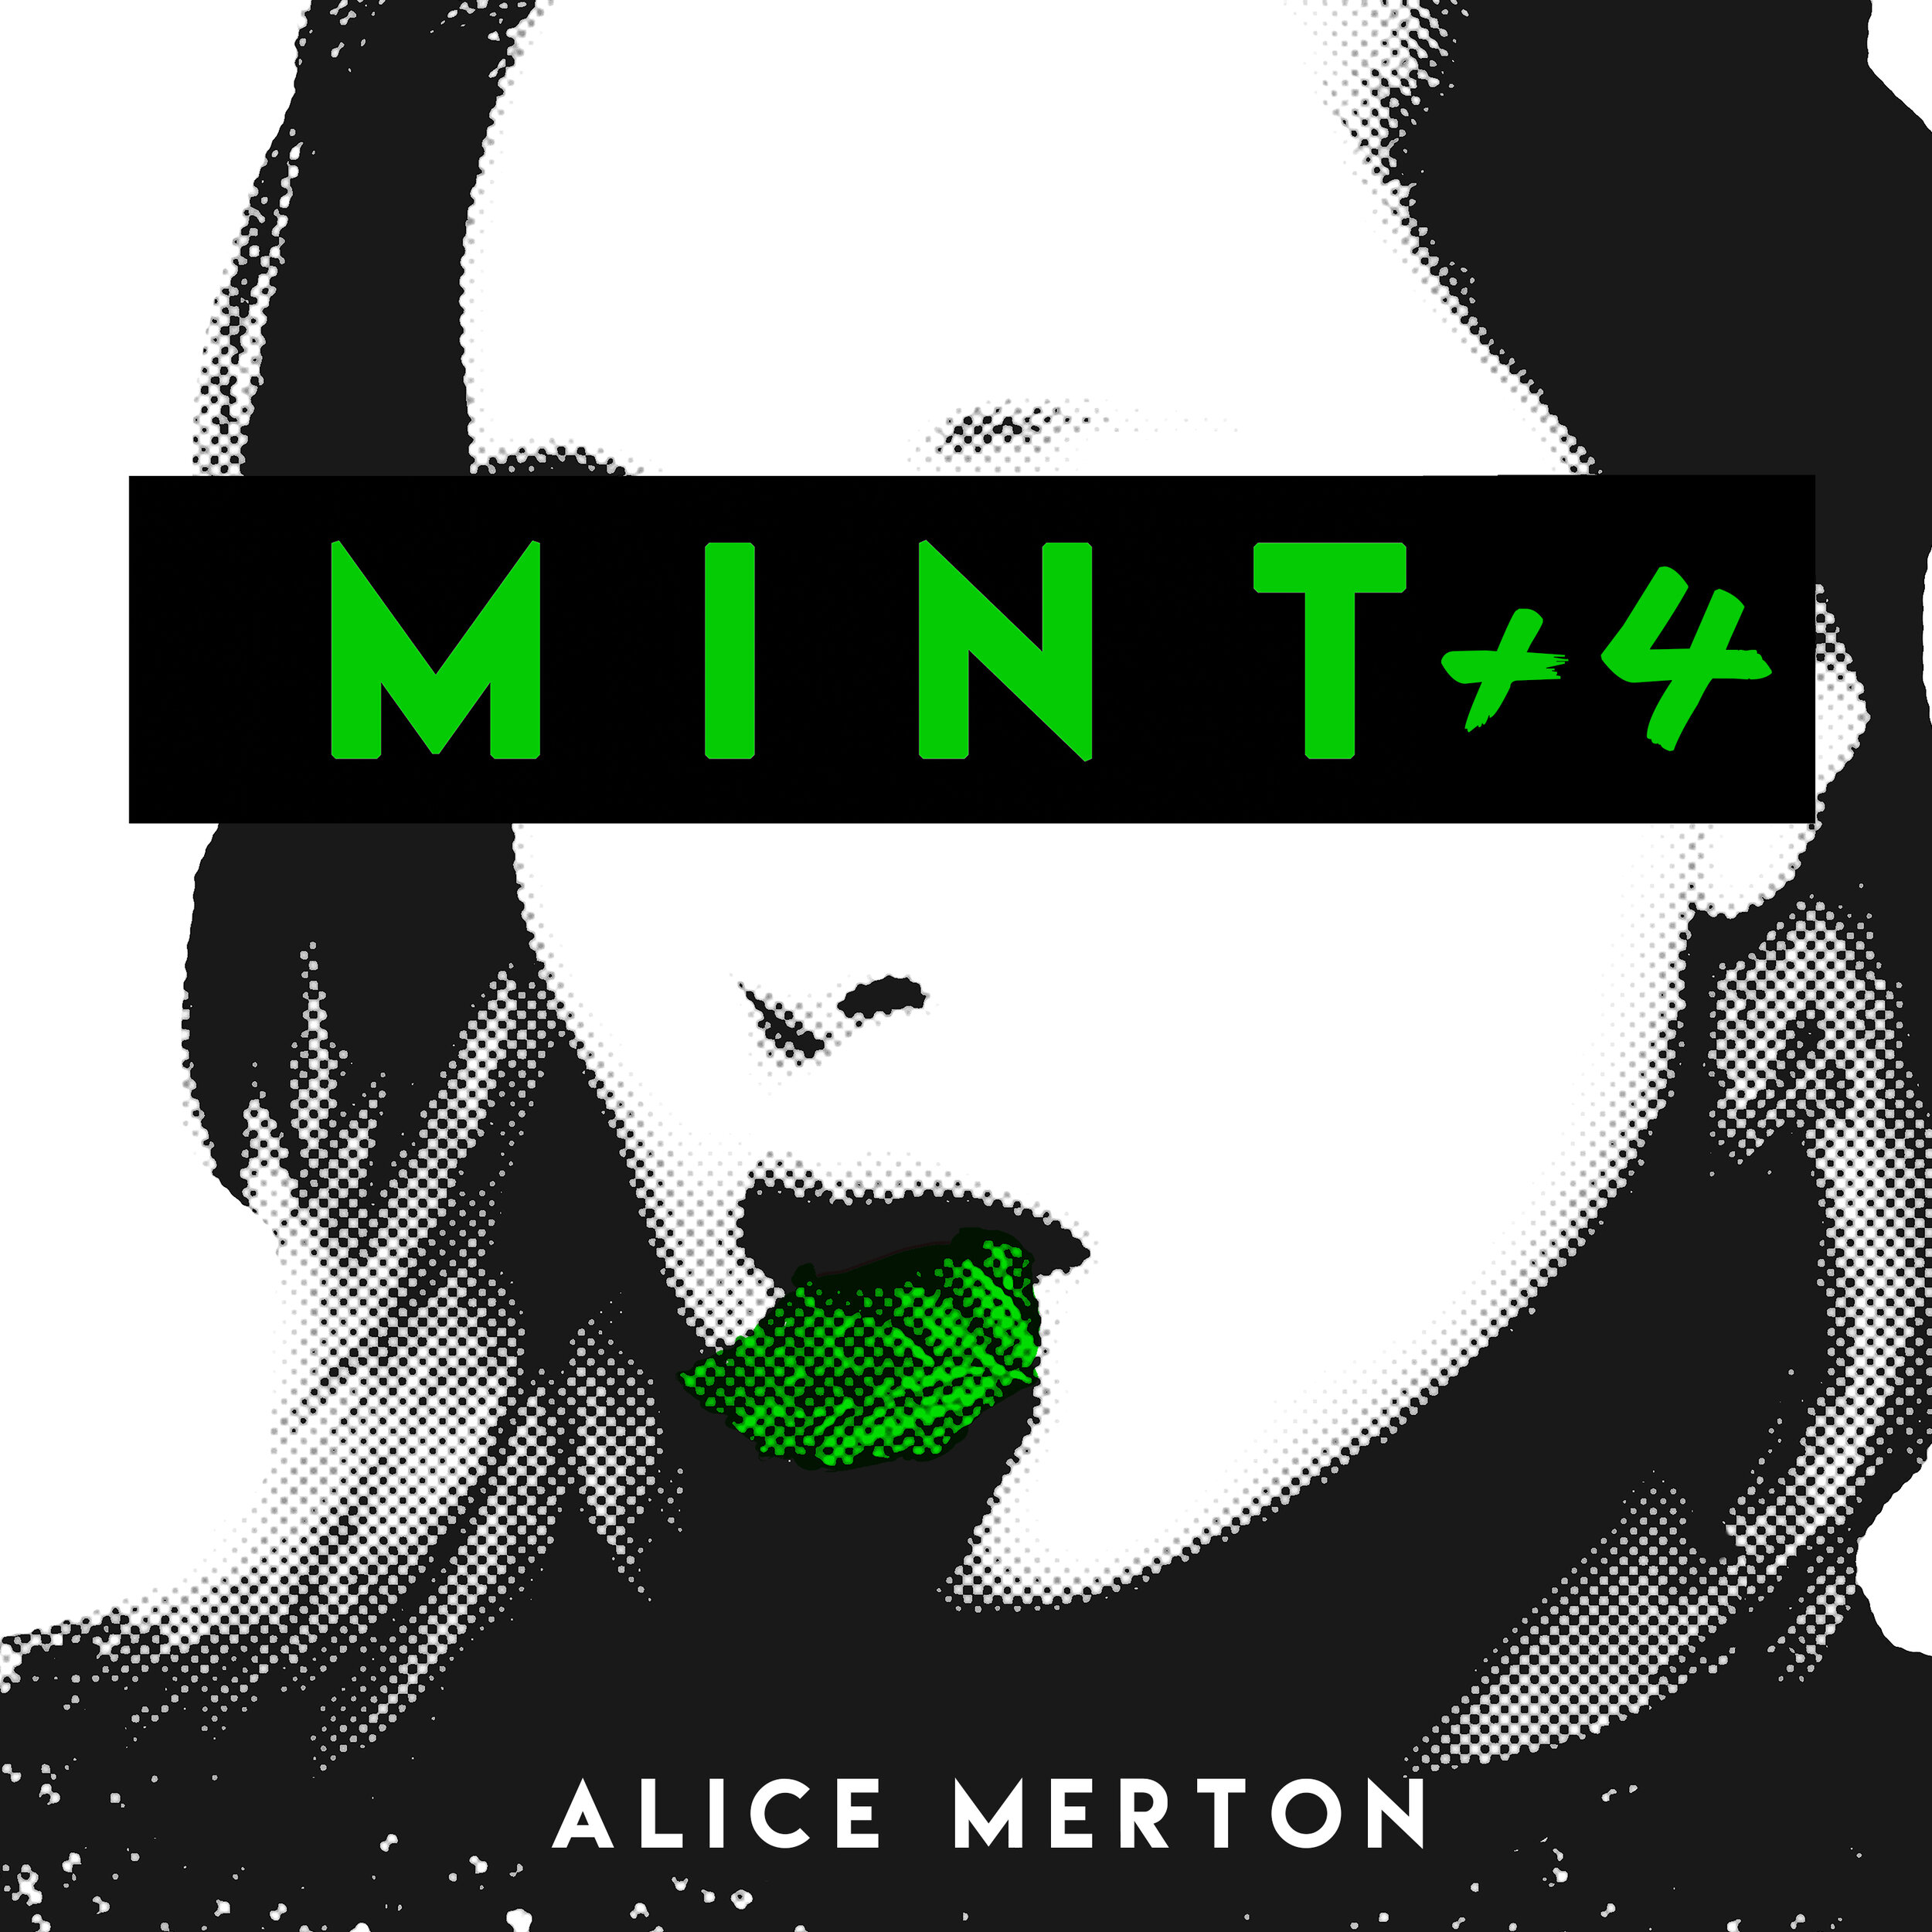 Alice Merton - MINT +4 Artwork - 3000x3000px.jpg